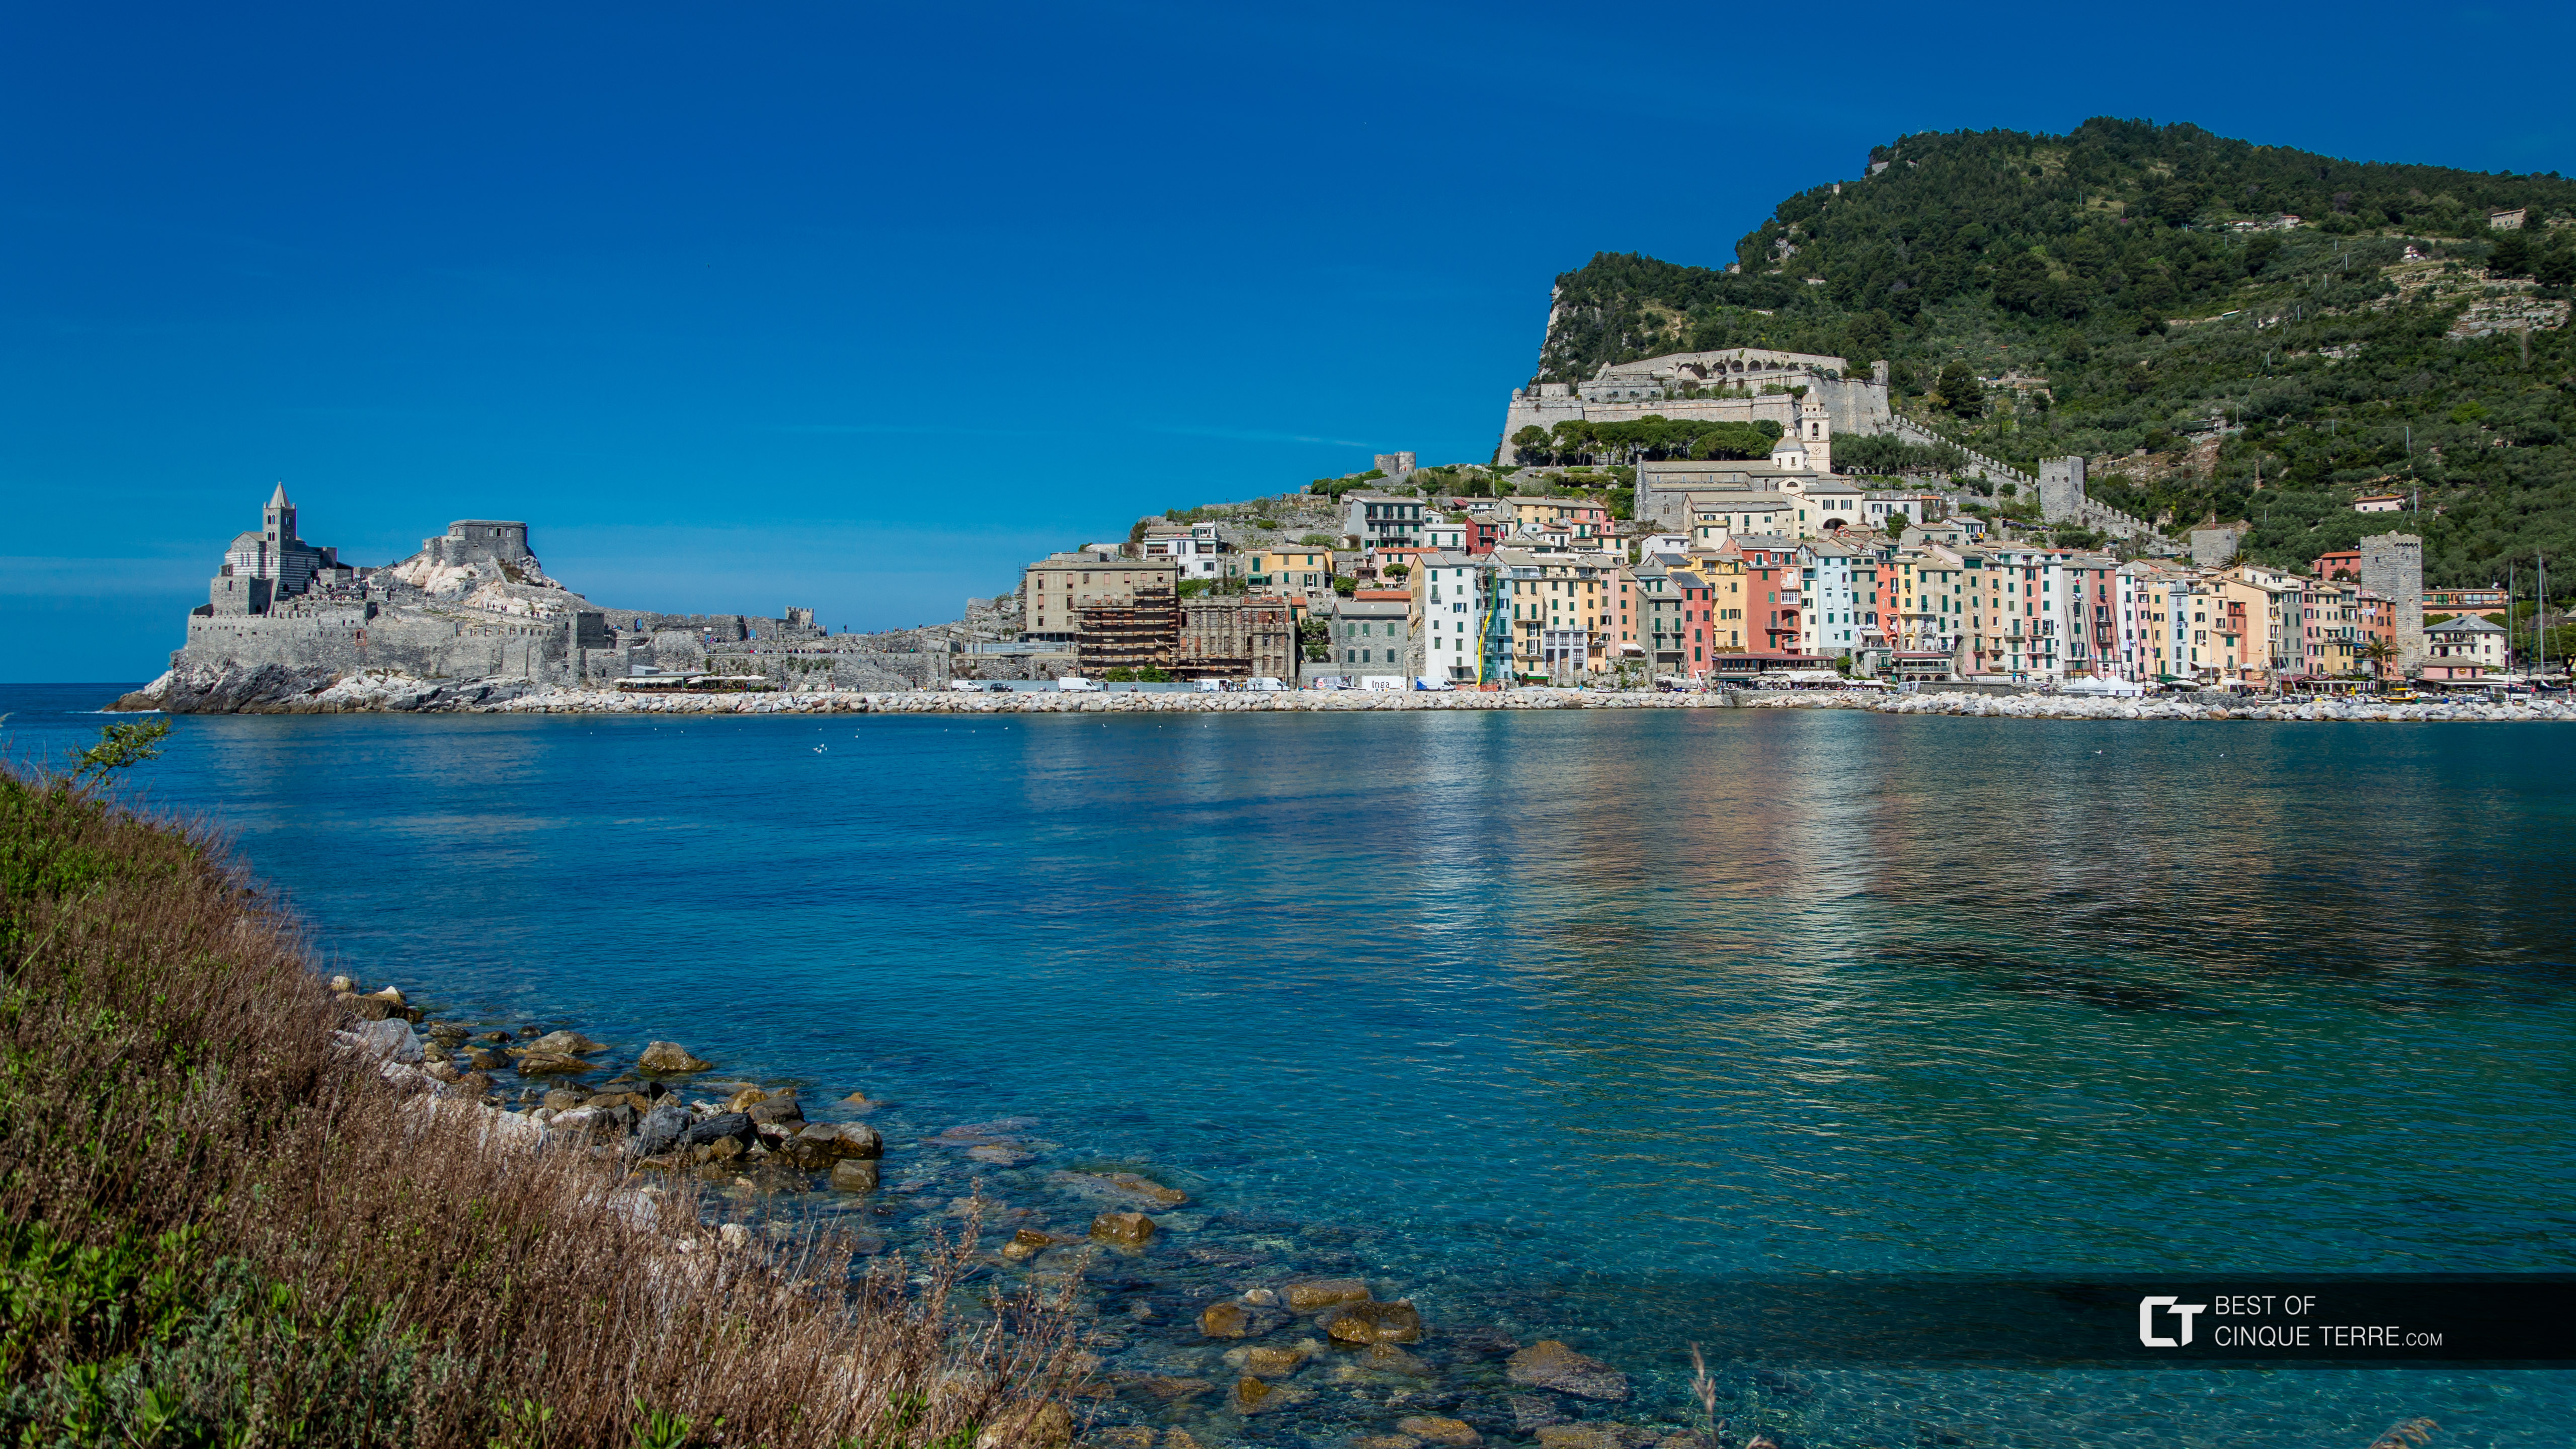 View of the village from the island of Palmaria, Portovenere, Italy